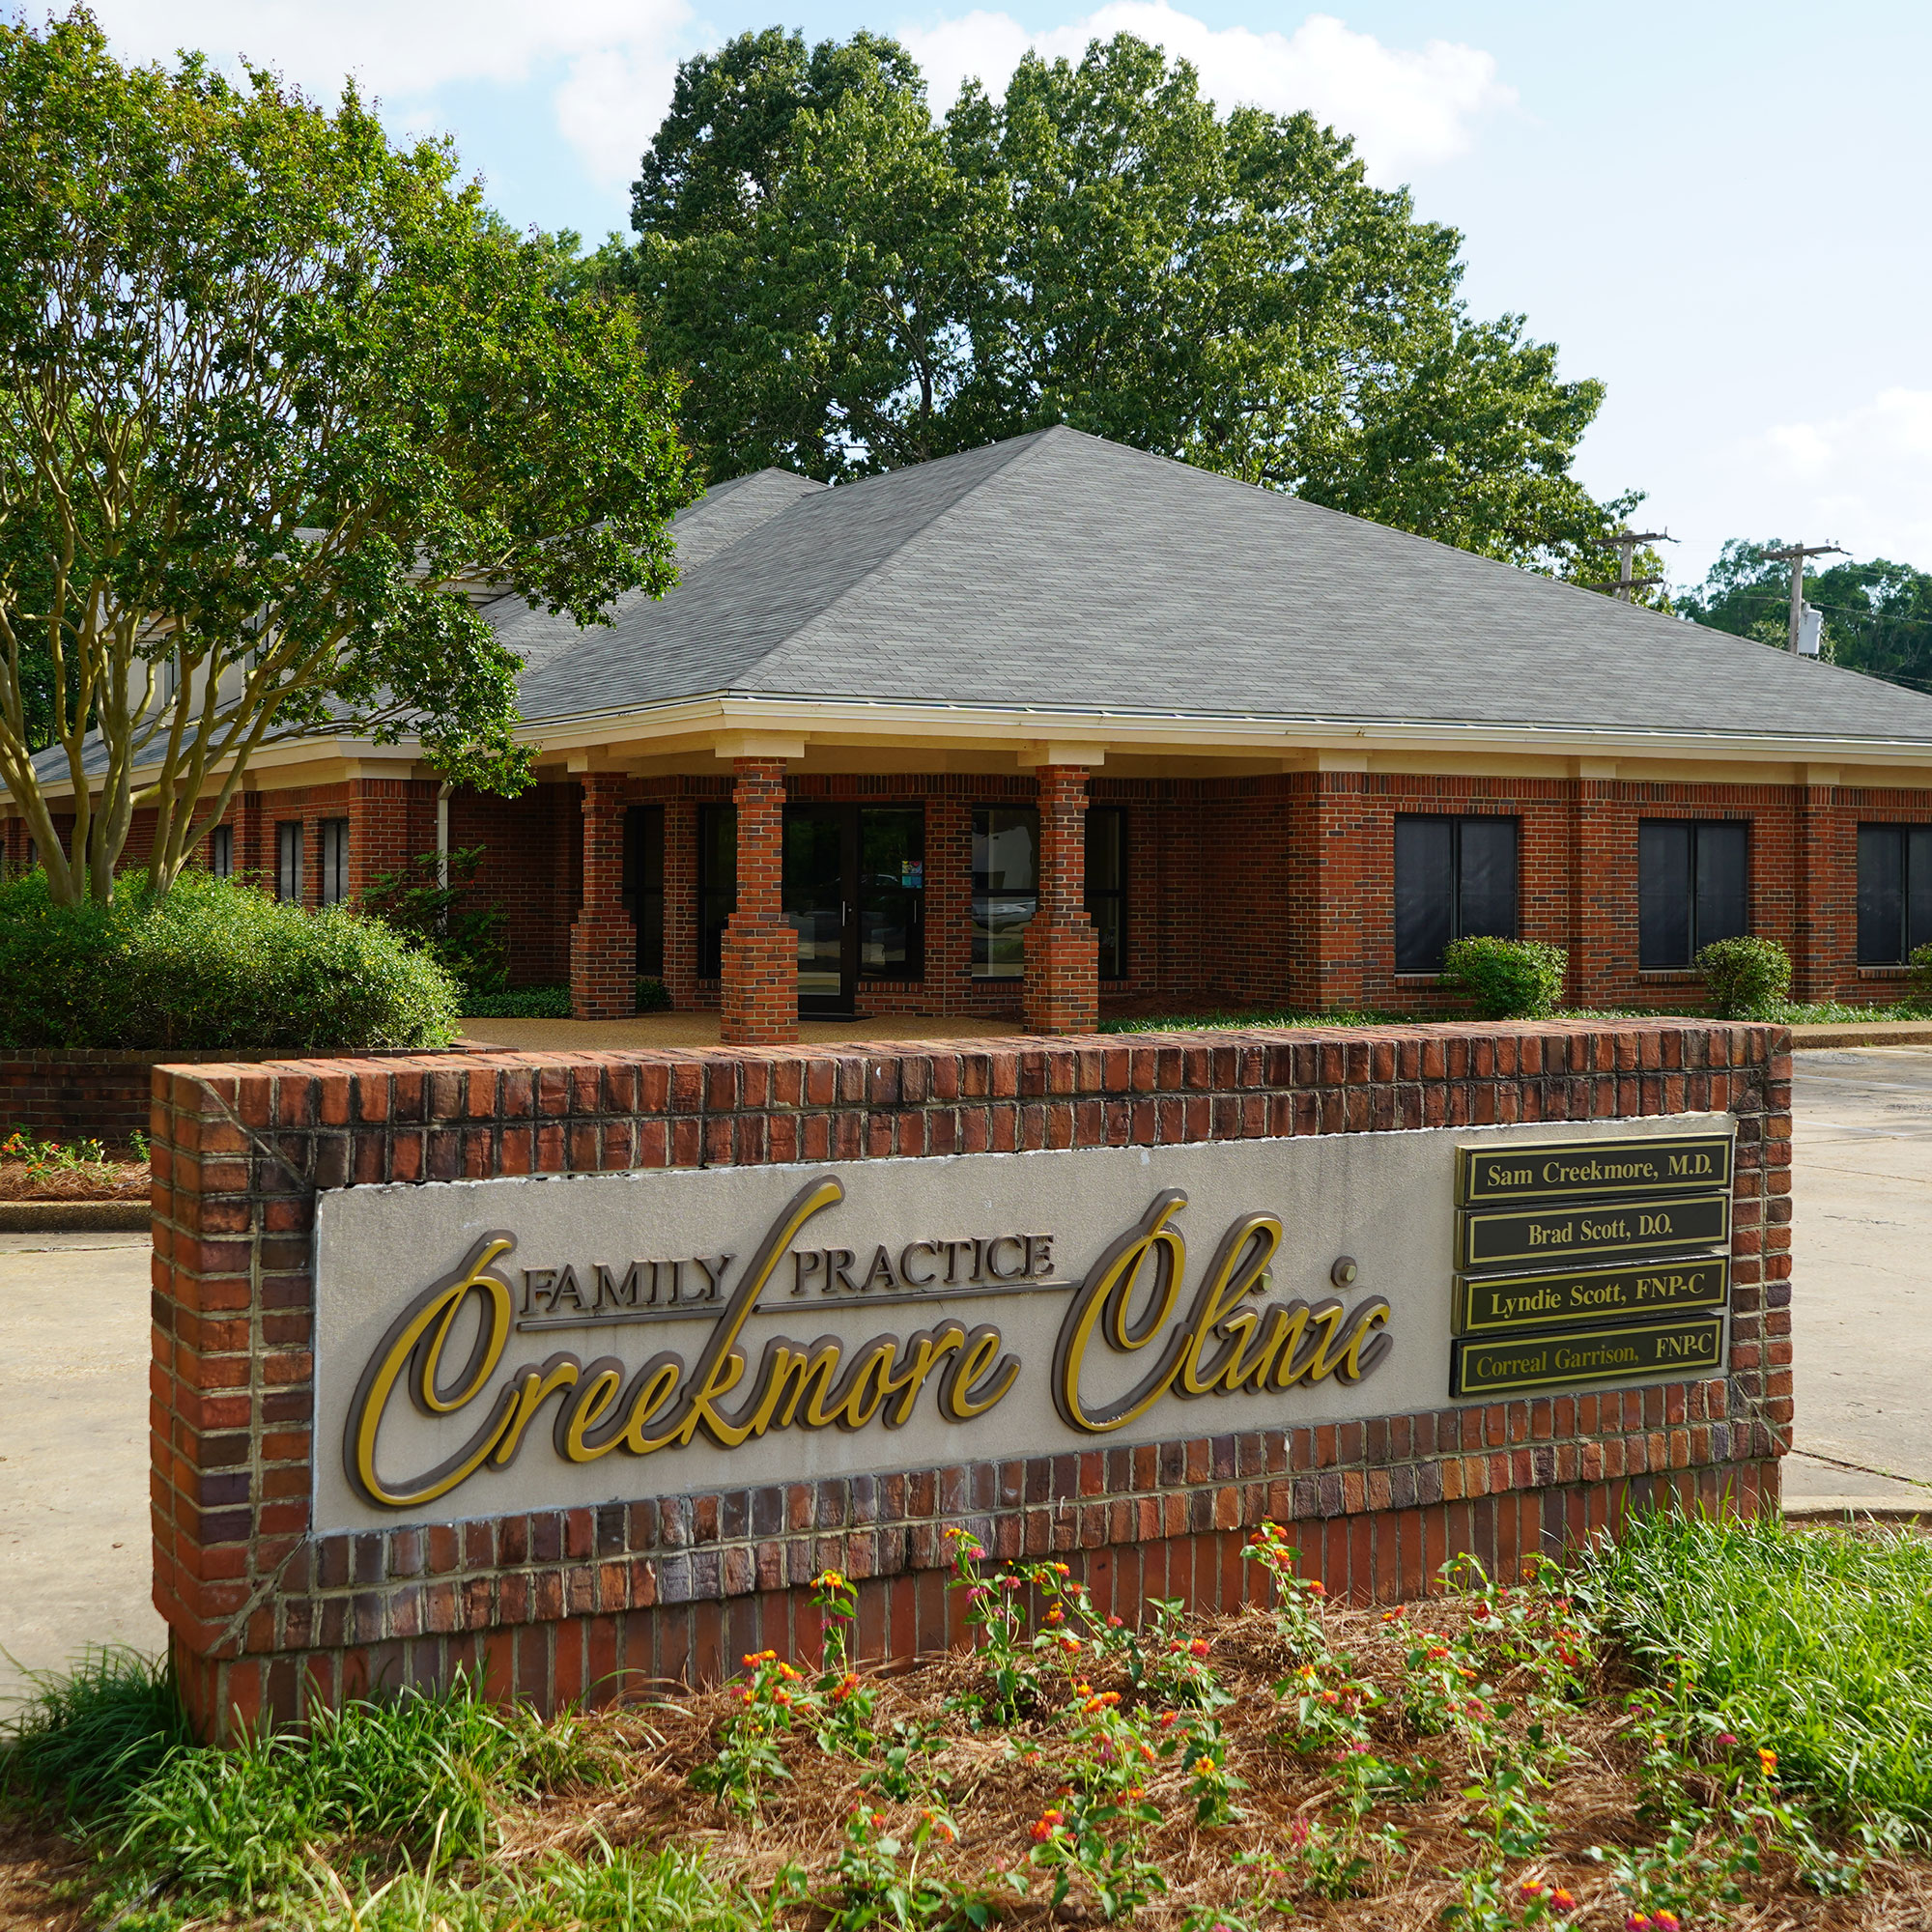 Creekmore Clinic, New Albany, MS